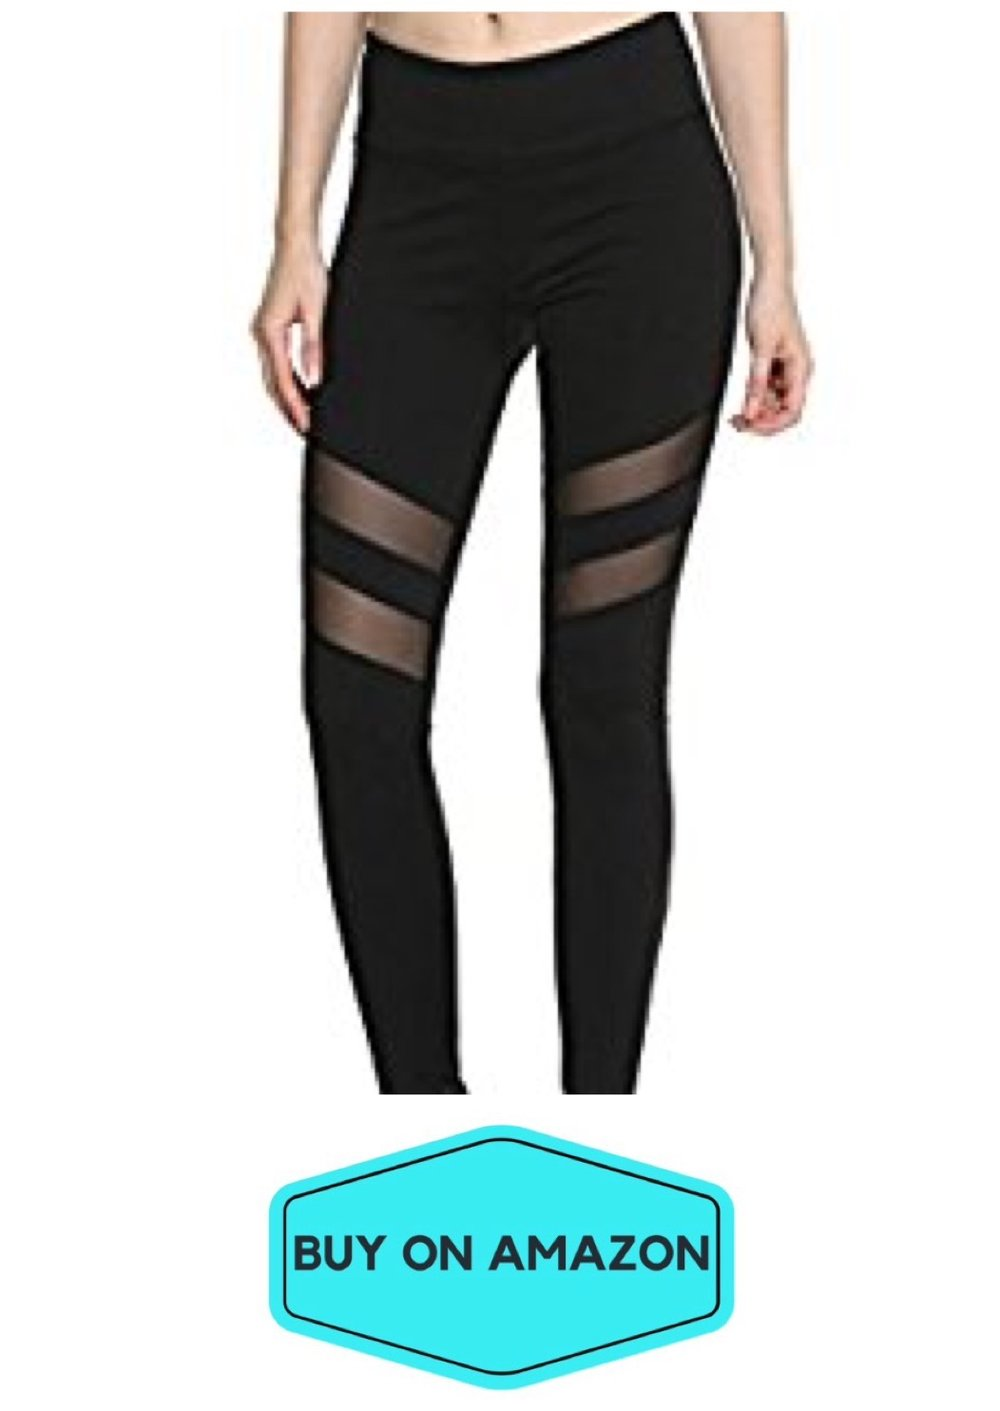 Stretchy Mesh Leggings